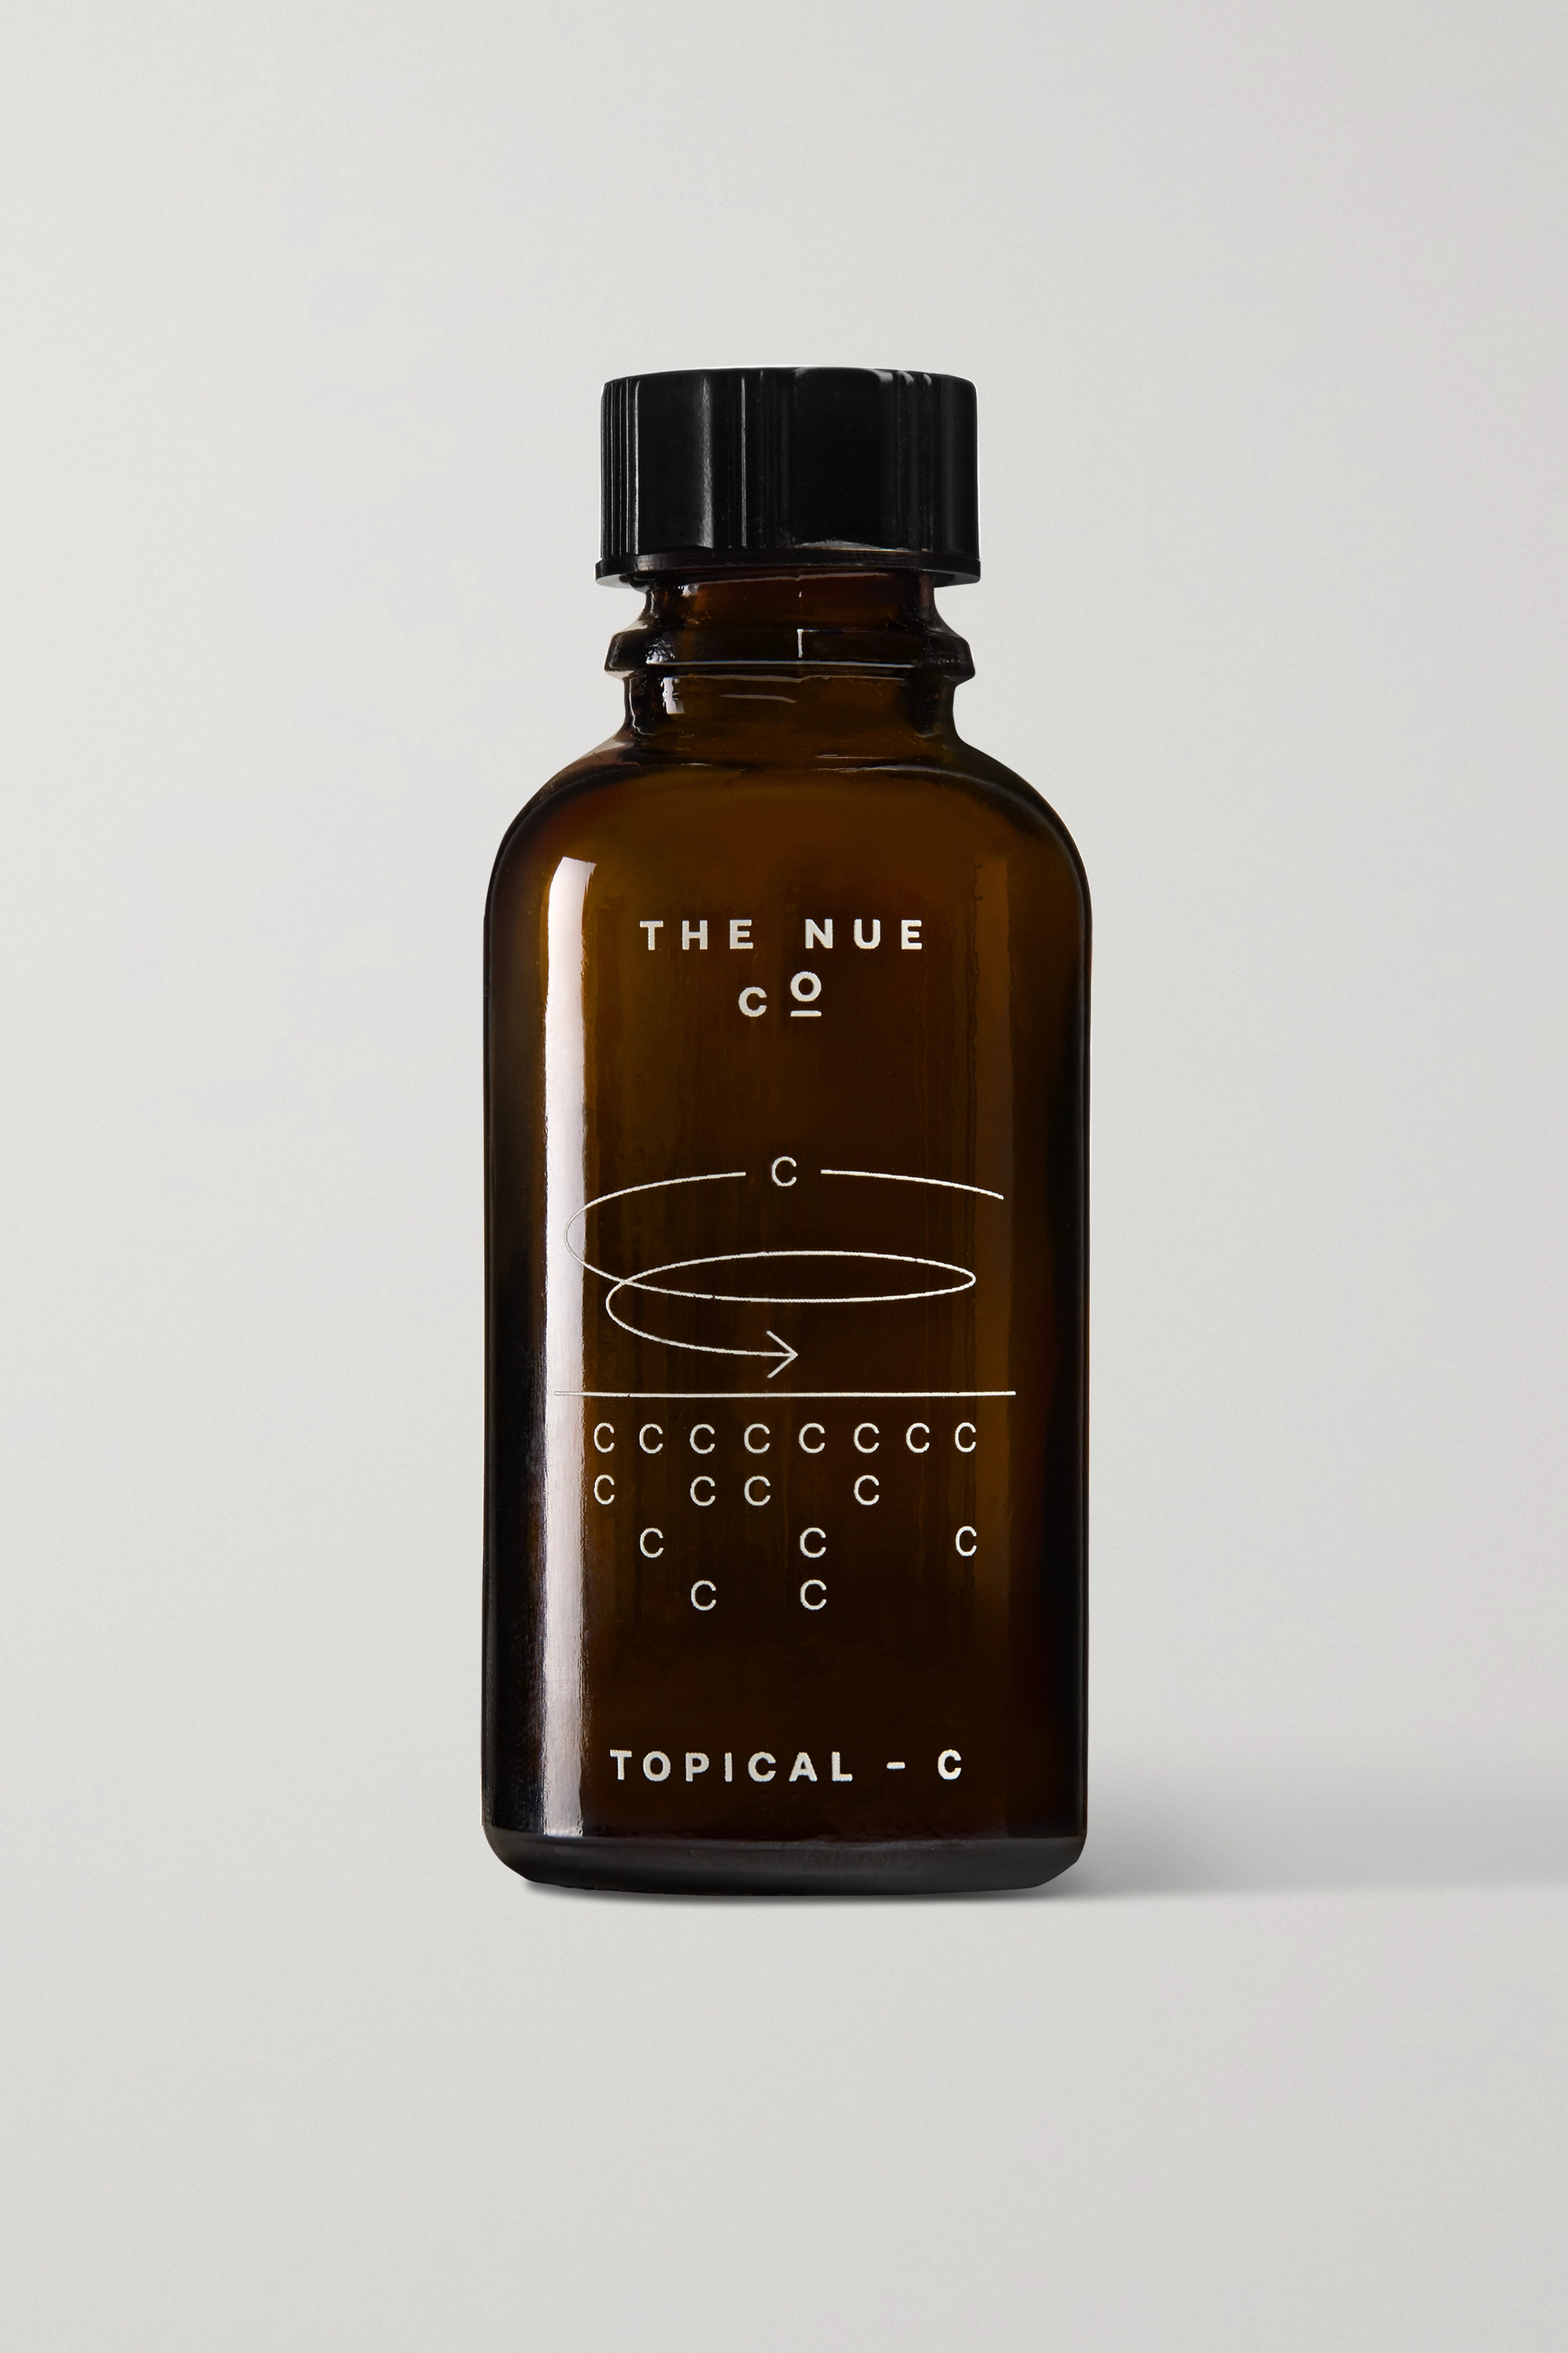 The Nue Co. Topical - C